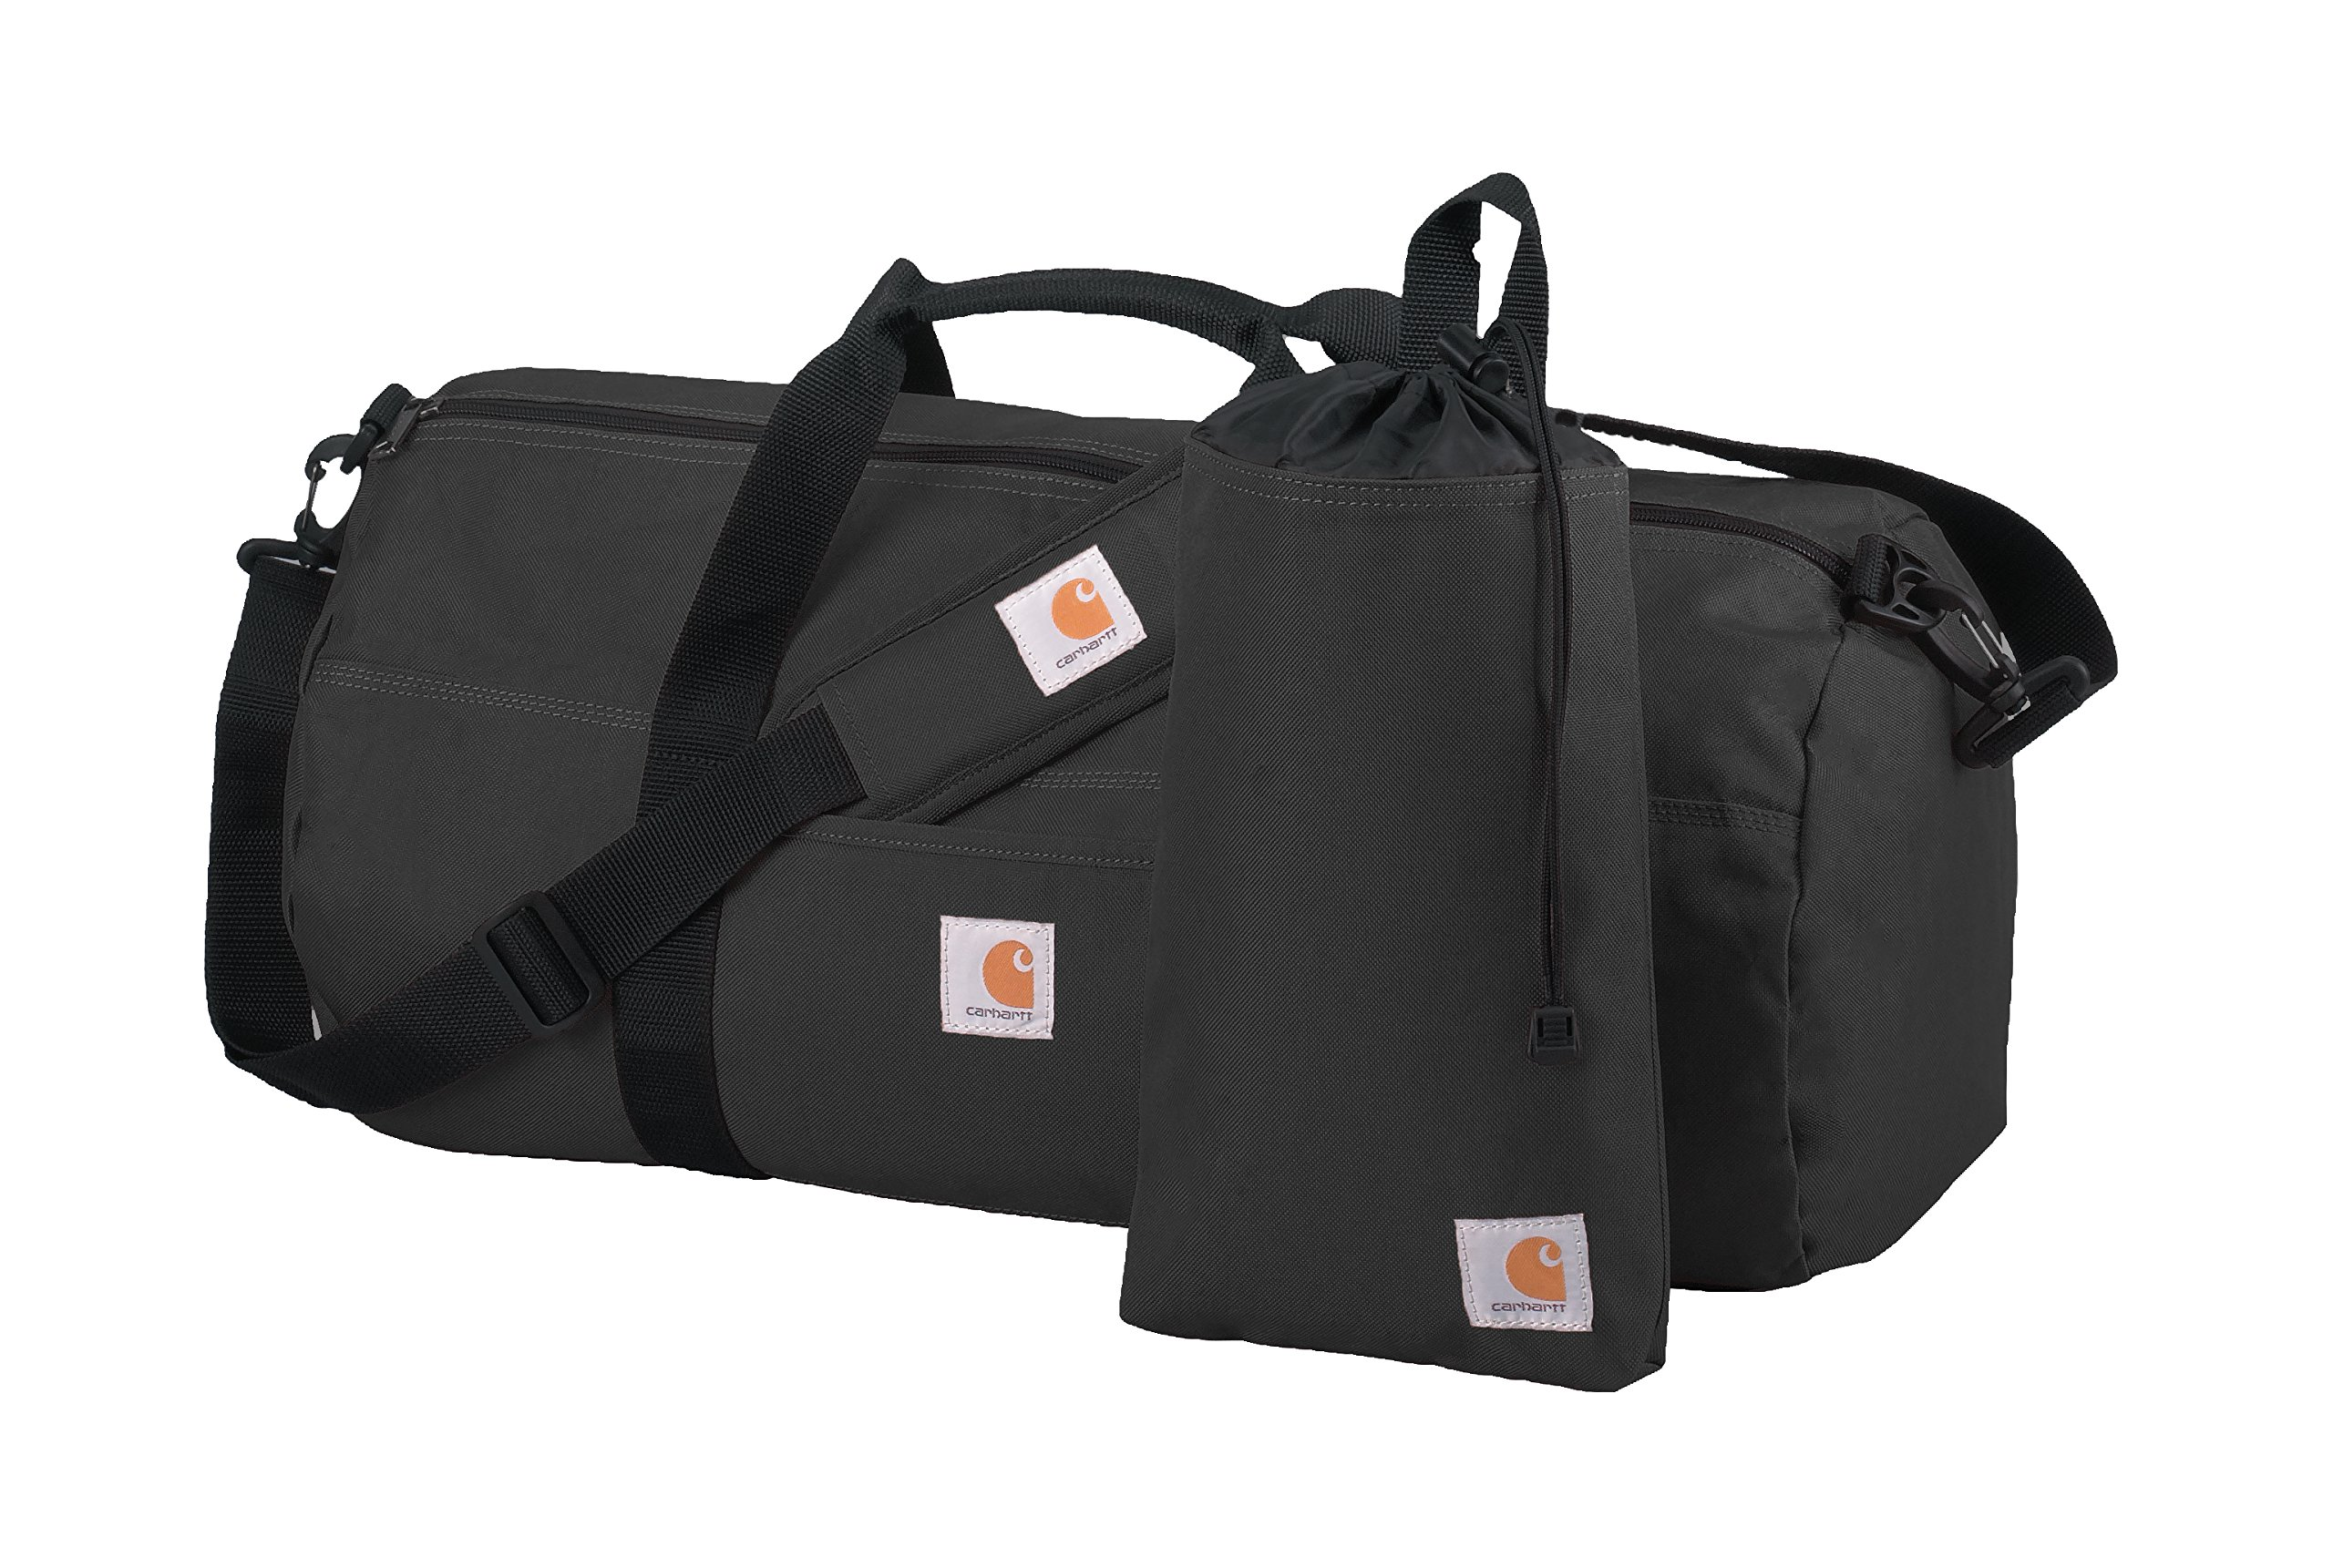 Carhartt Trade Series 2 in 1 Packable Duffel with Utility Pouch, Medium, Black